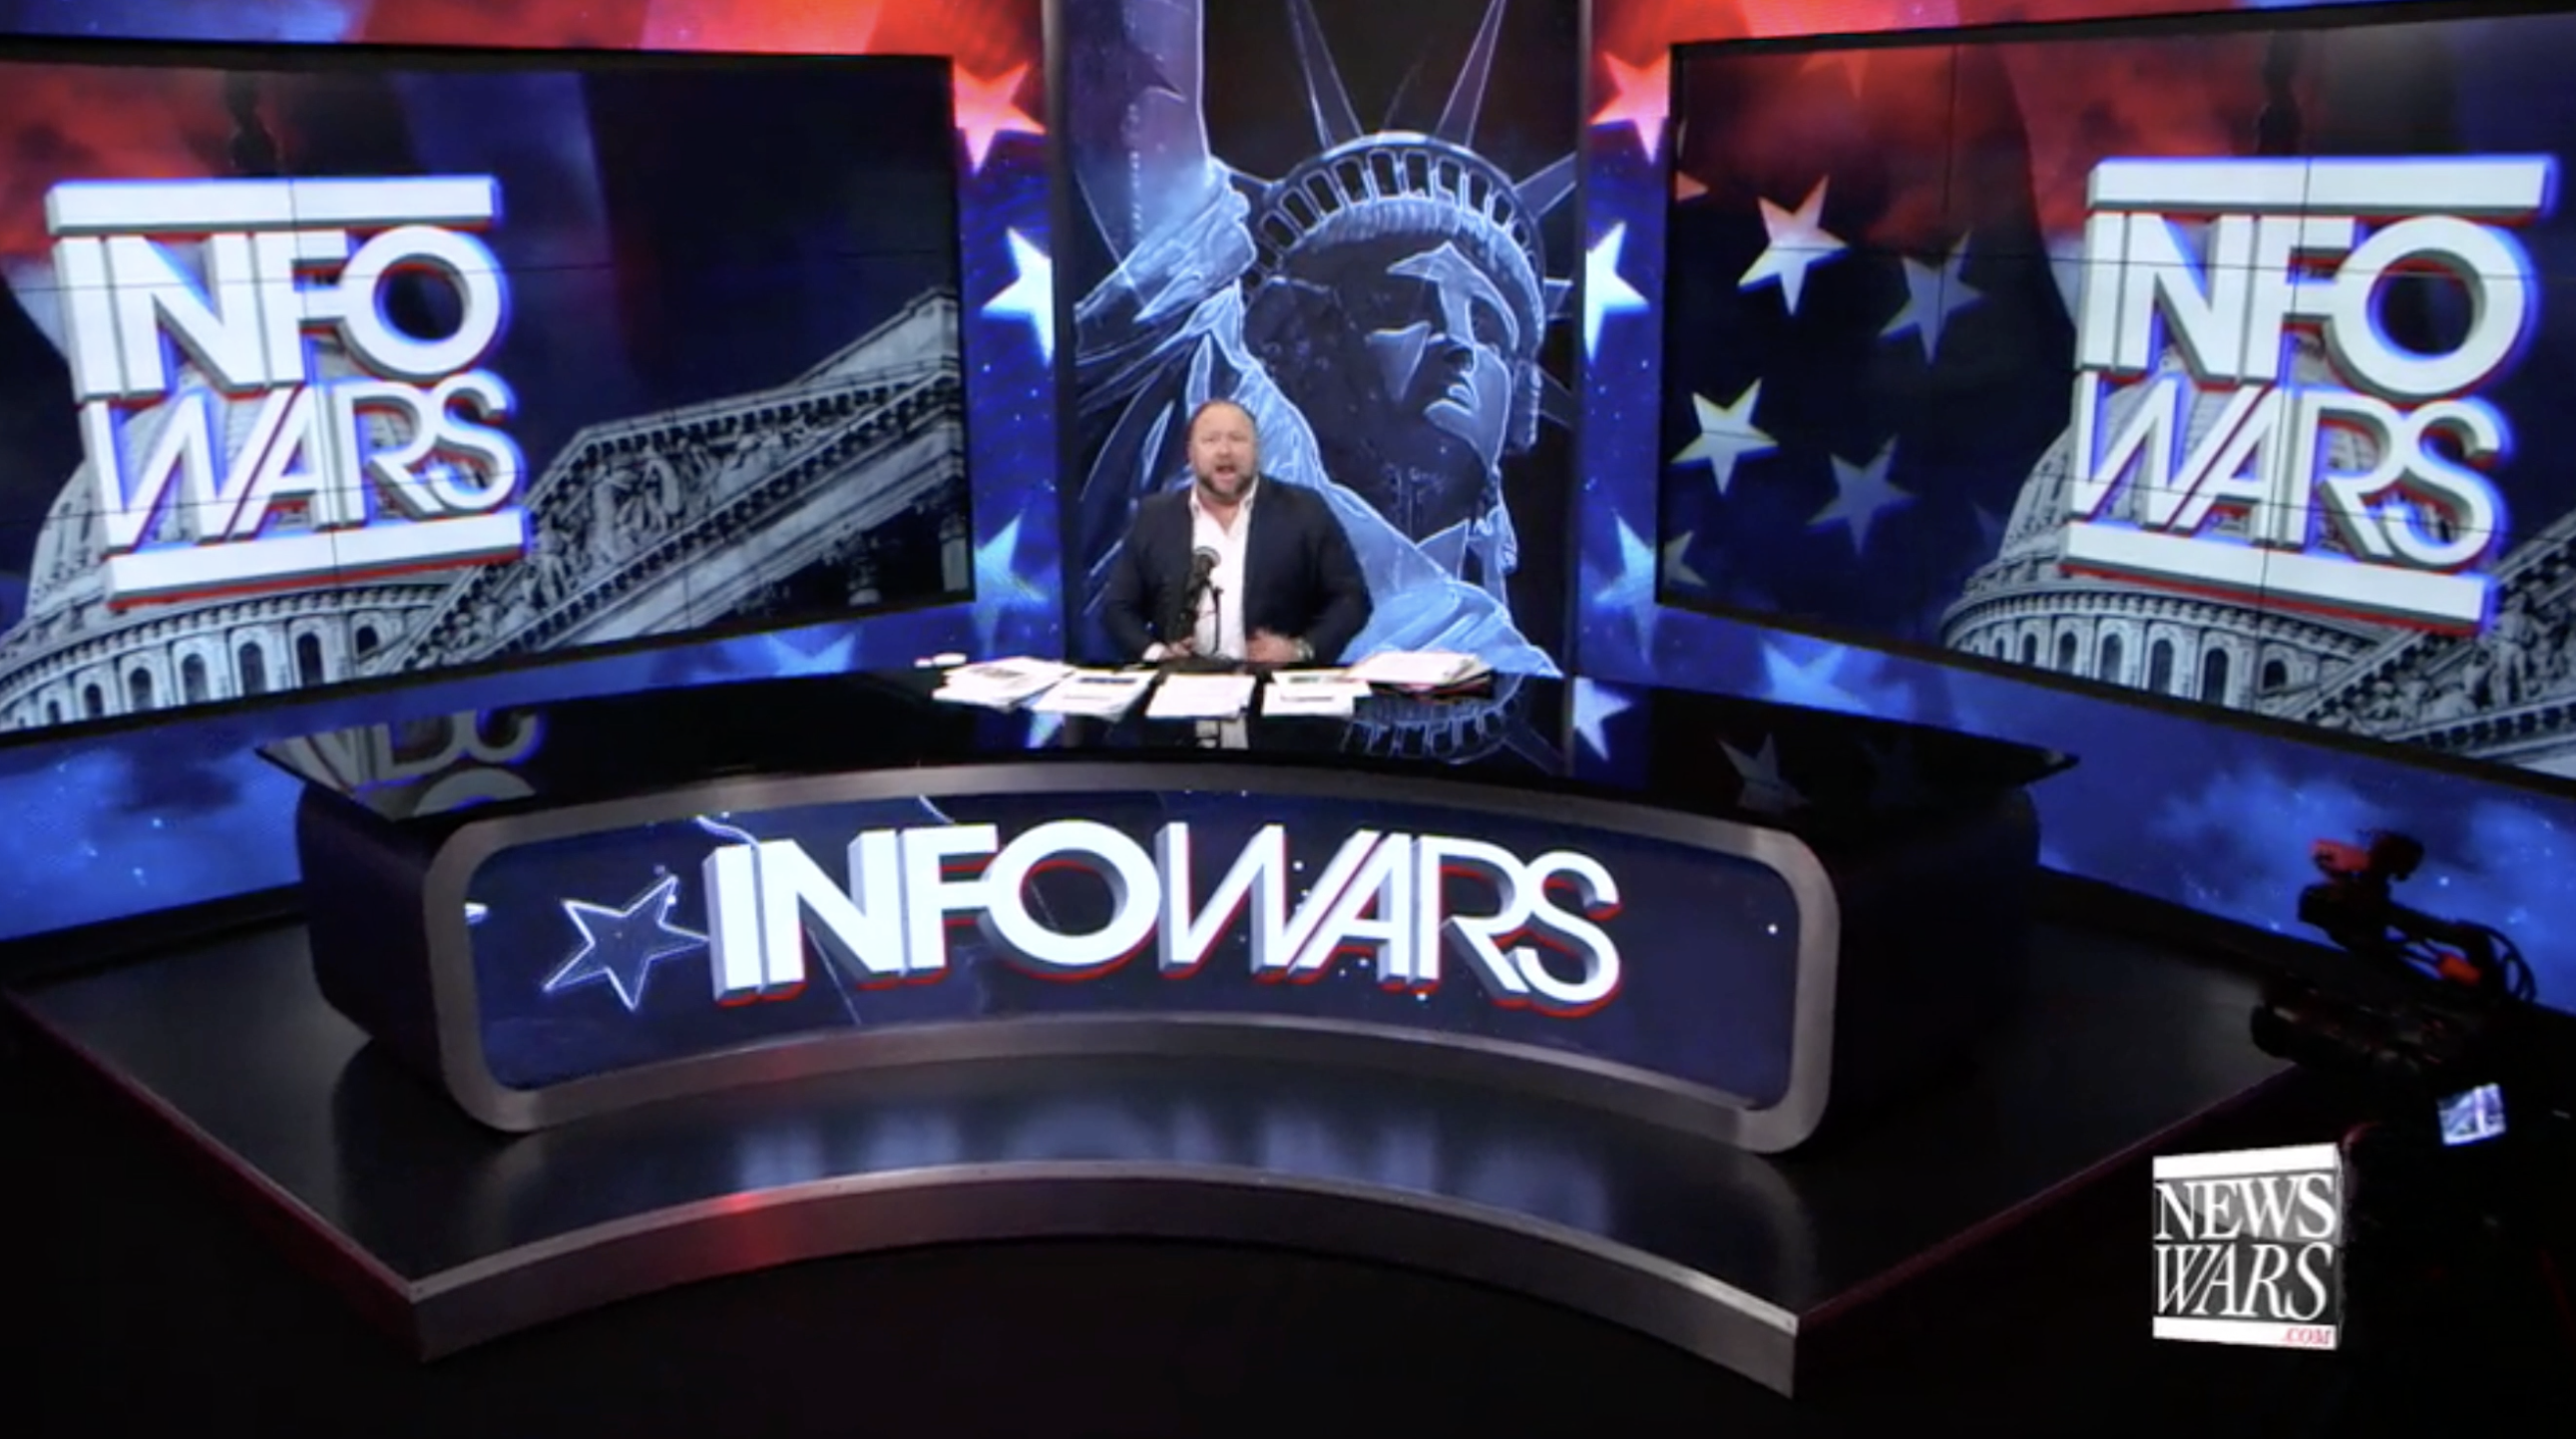 Alex Jones Infowars Studio EXZM Zack Mount December 31st 2020